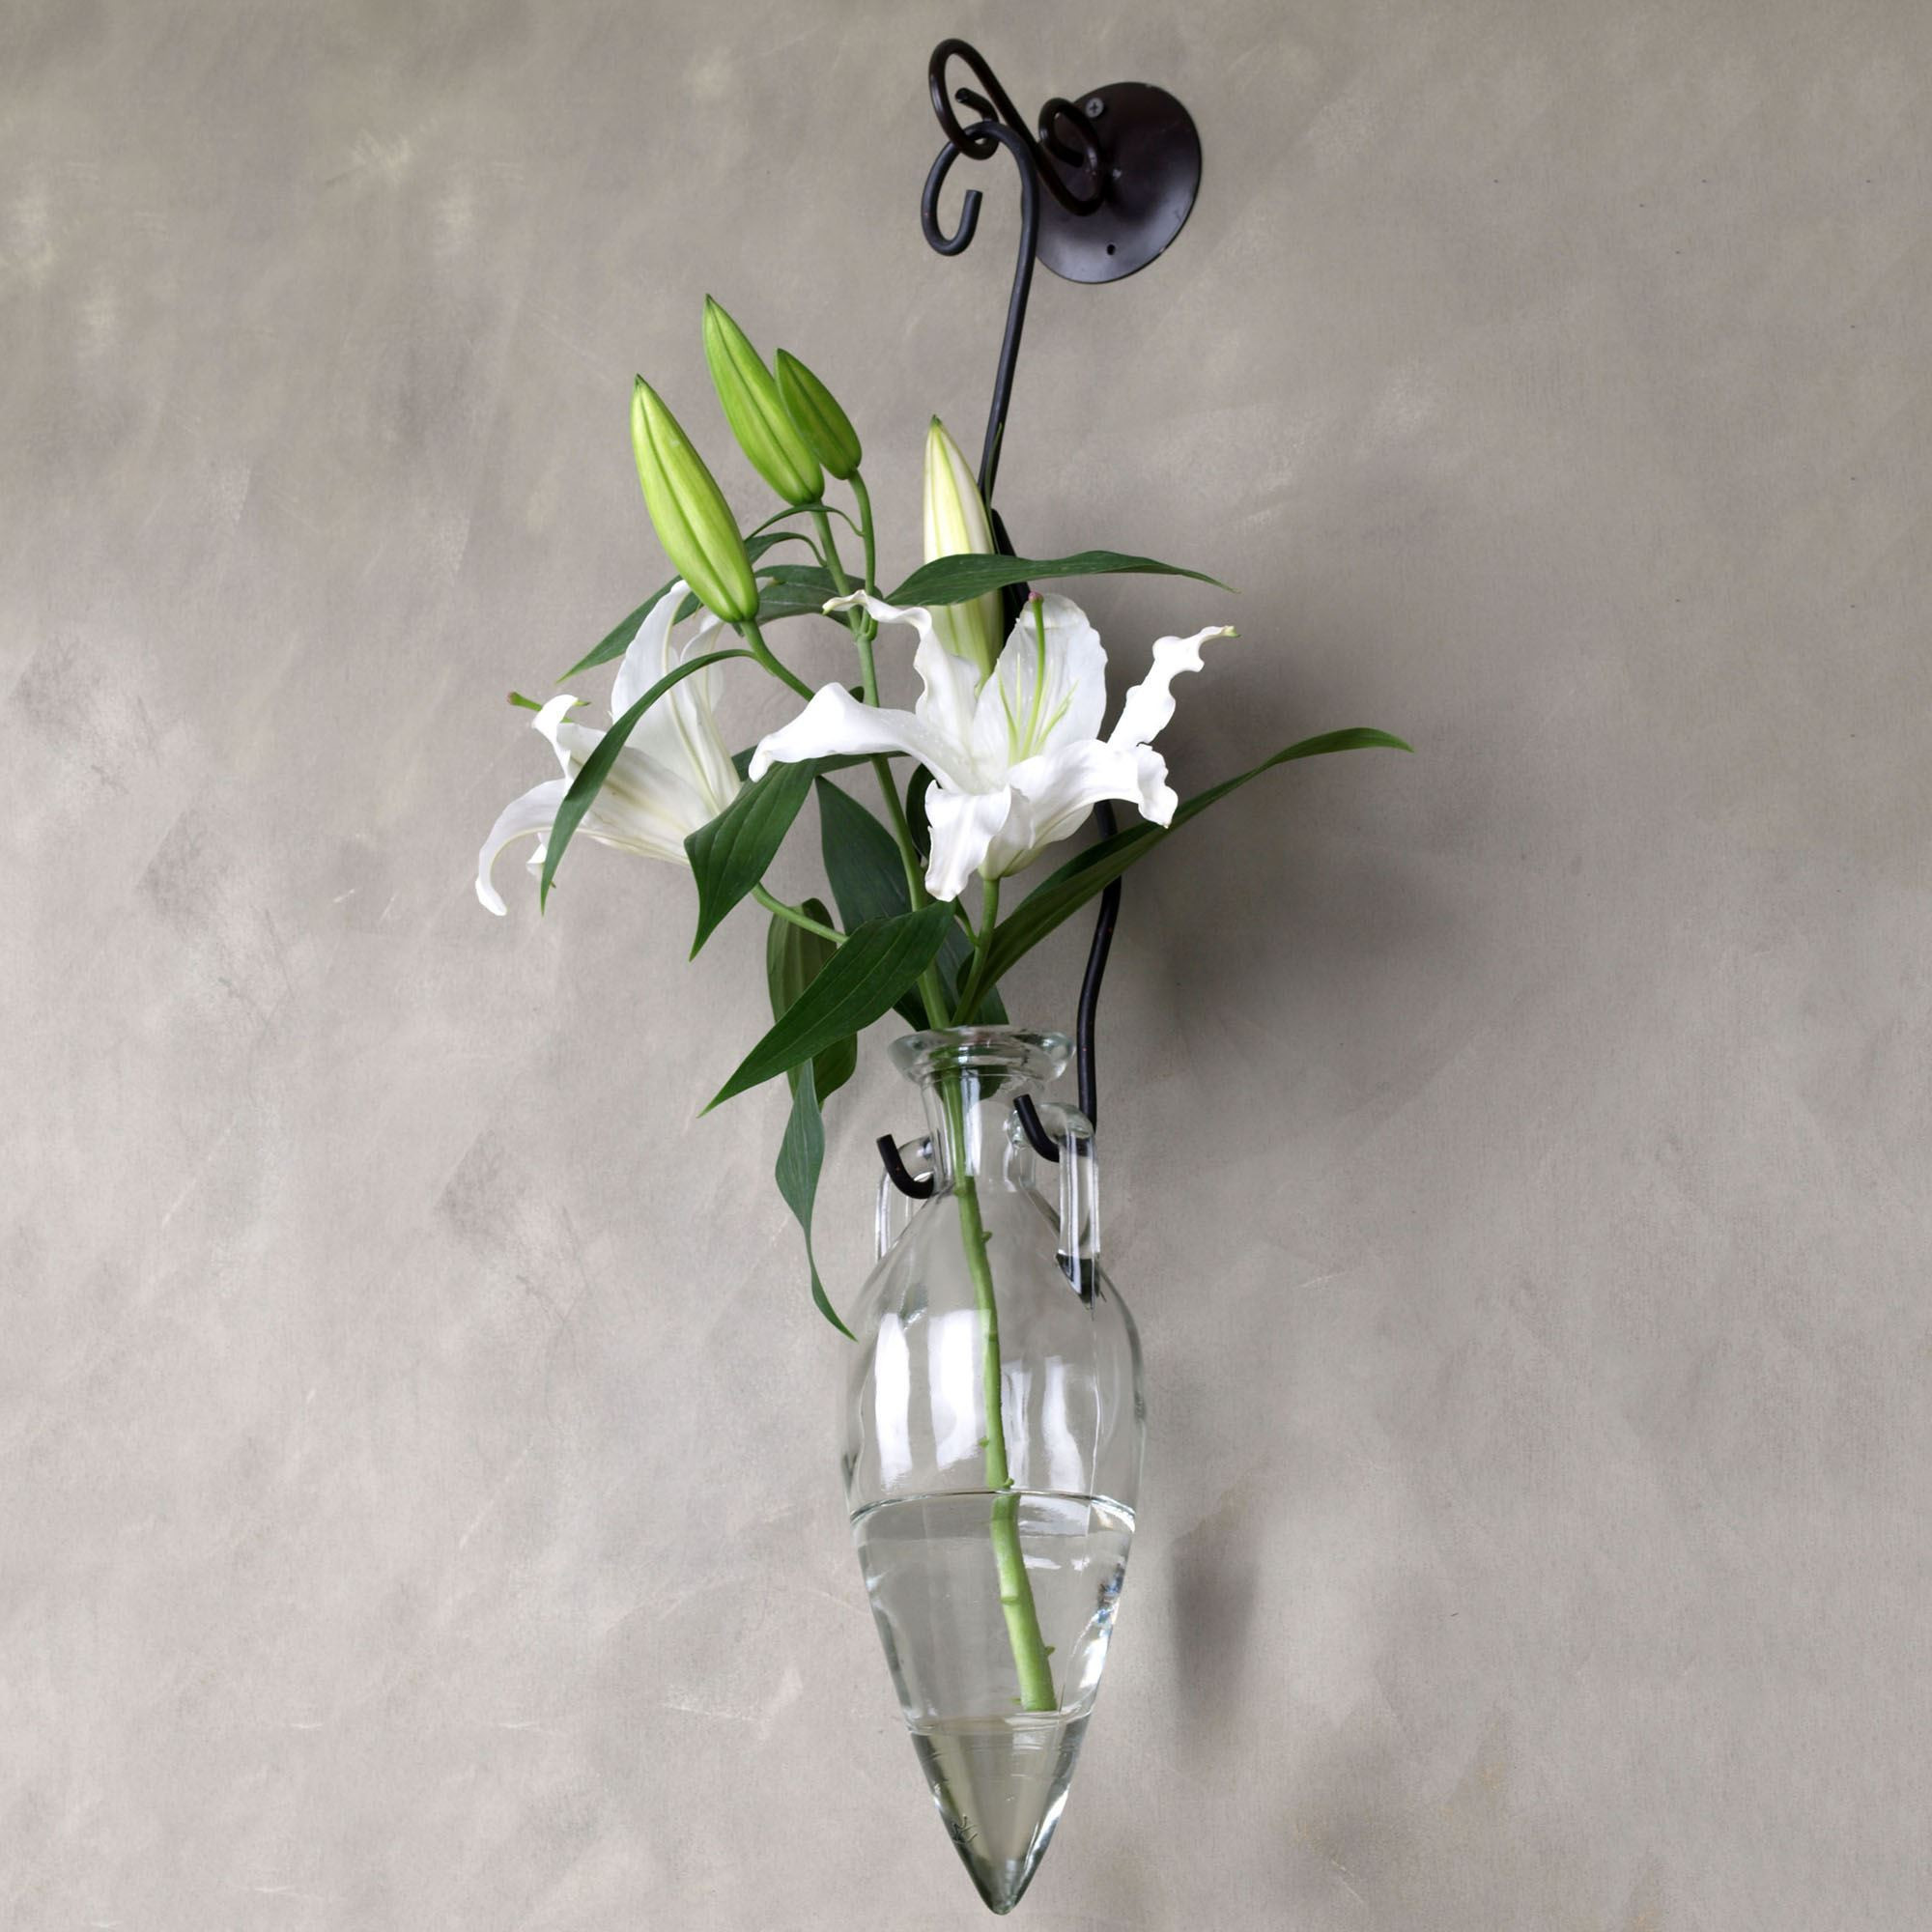 Glass Display Vase Of Collection Of Hanging Glass Vases Wall Vases Artificial Plants with Regard to Hanging Glass Vases Wall Gallery H Vases Wall Hanging Flower Vase Newspaper I 0d Scheme Wall